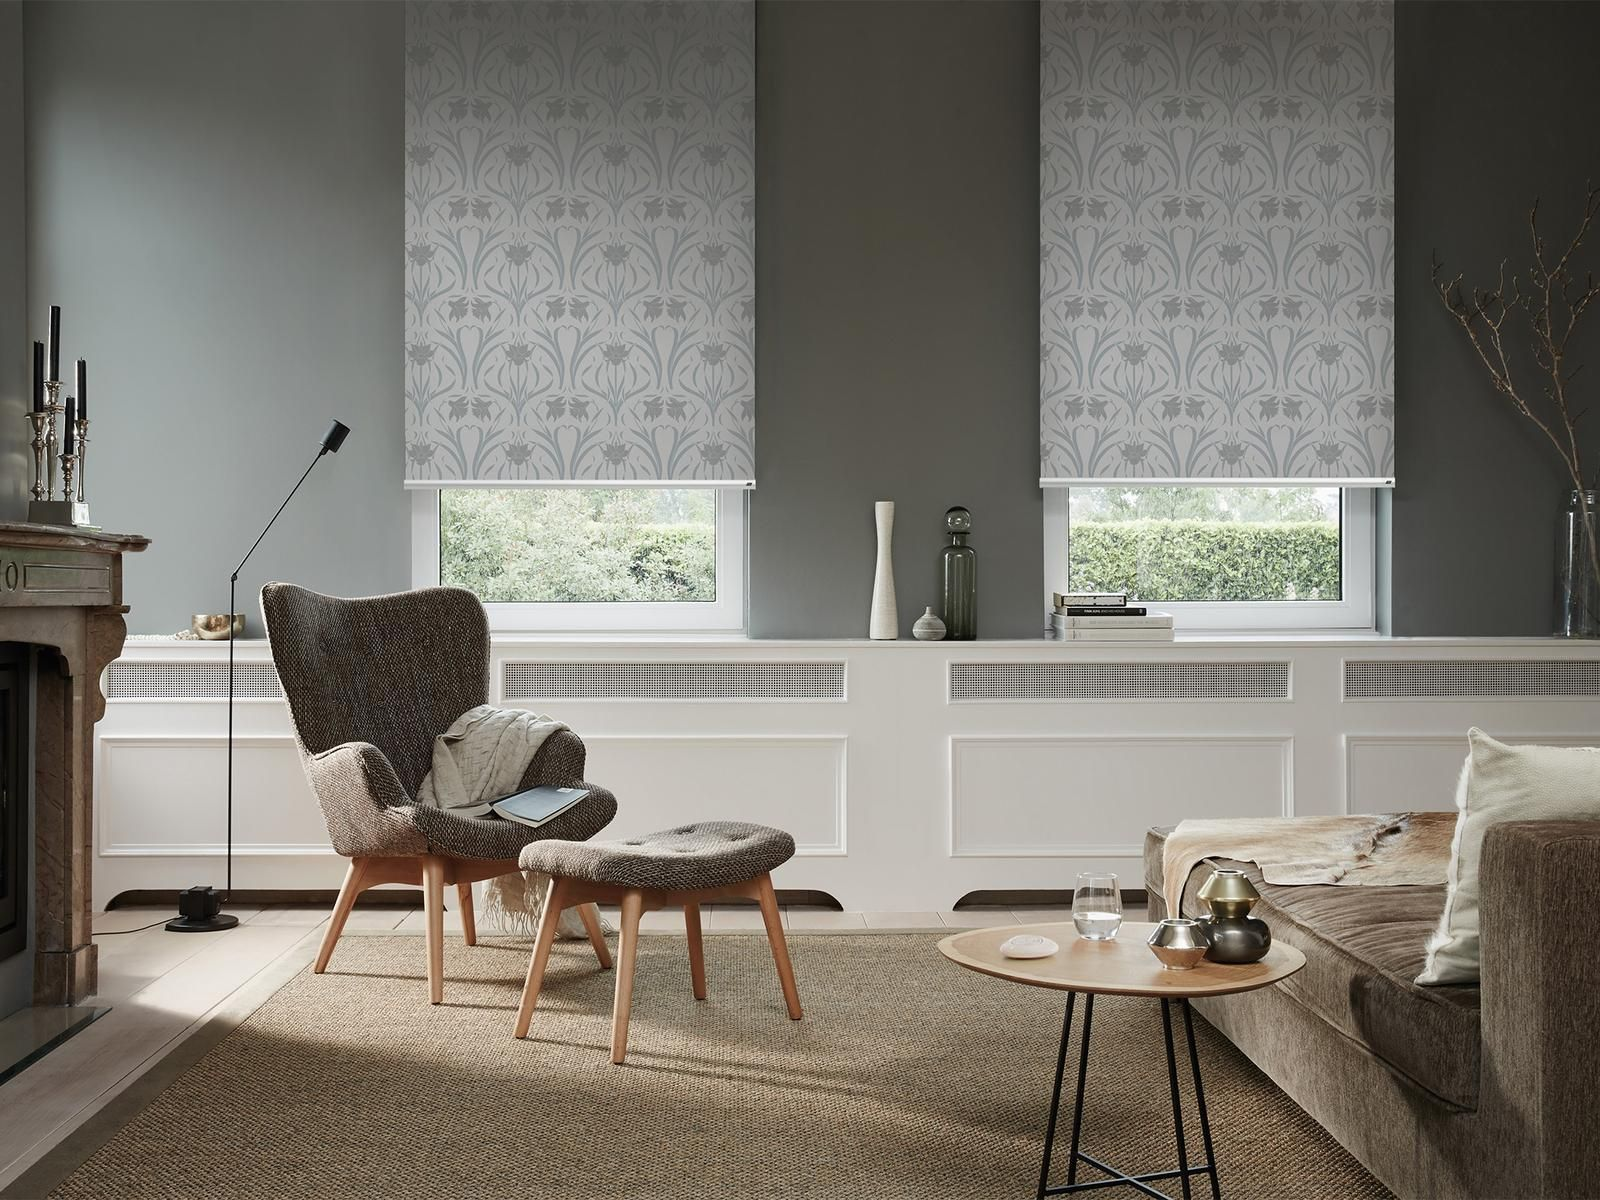 Wondrous tips fabric blinds cottages bathroom blinds water